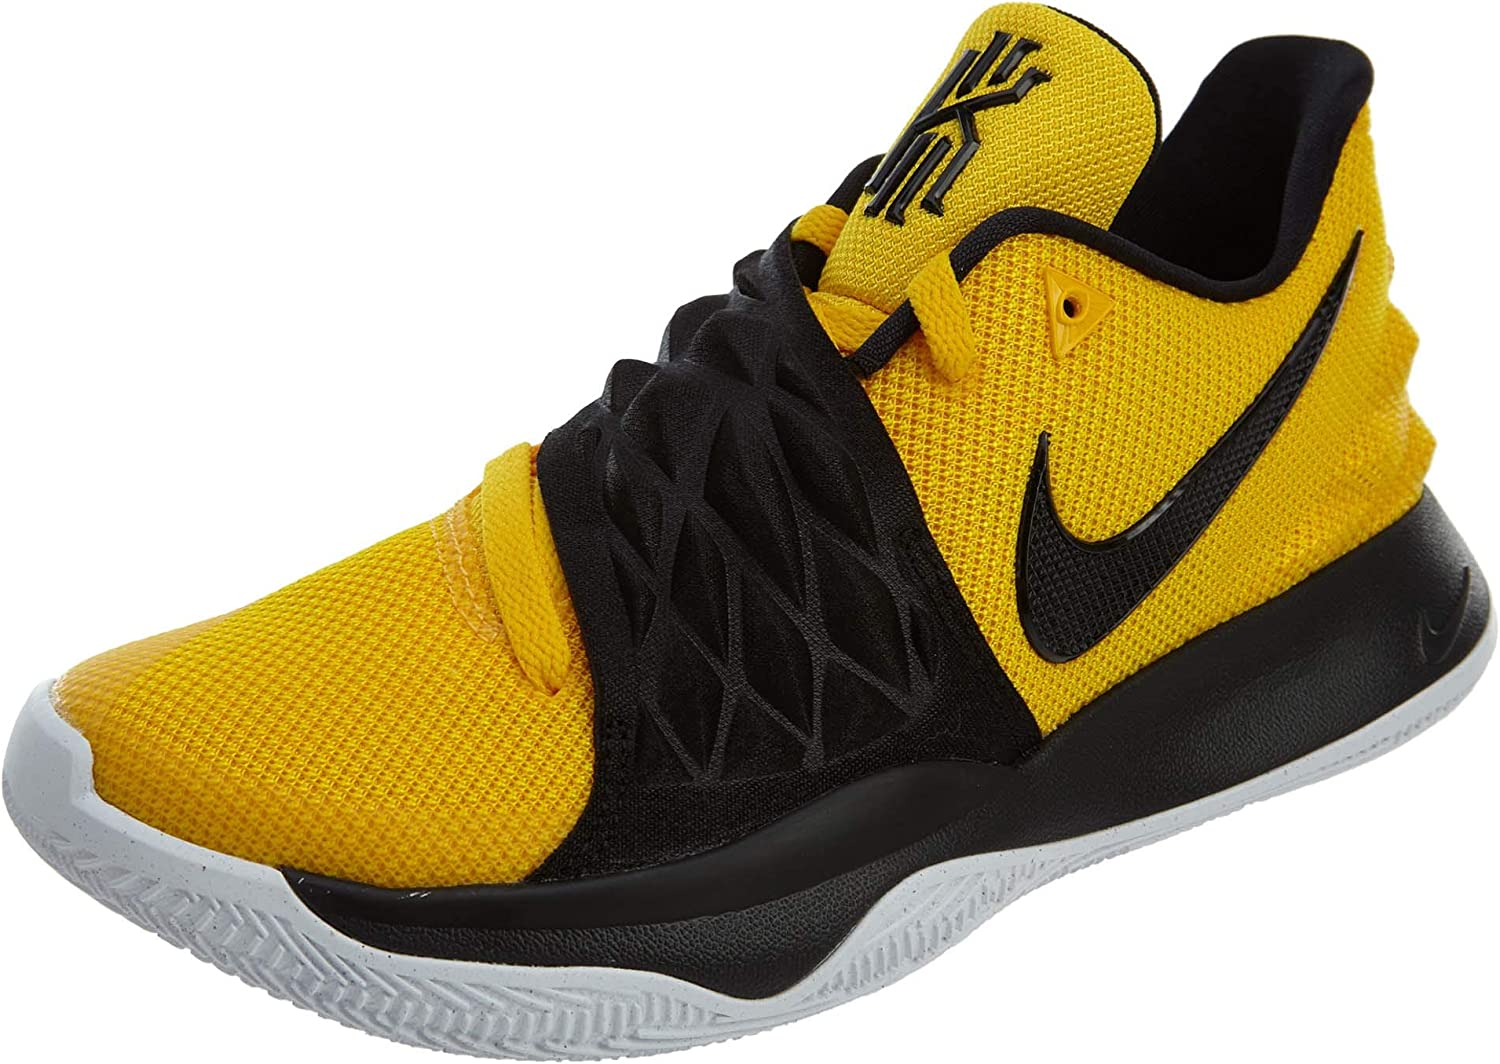 Nike Kyrie Low Mens Style  AO8979-700 Size  10 yellow Black